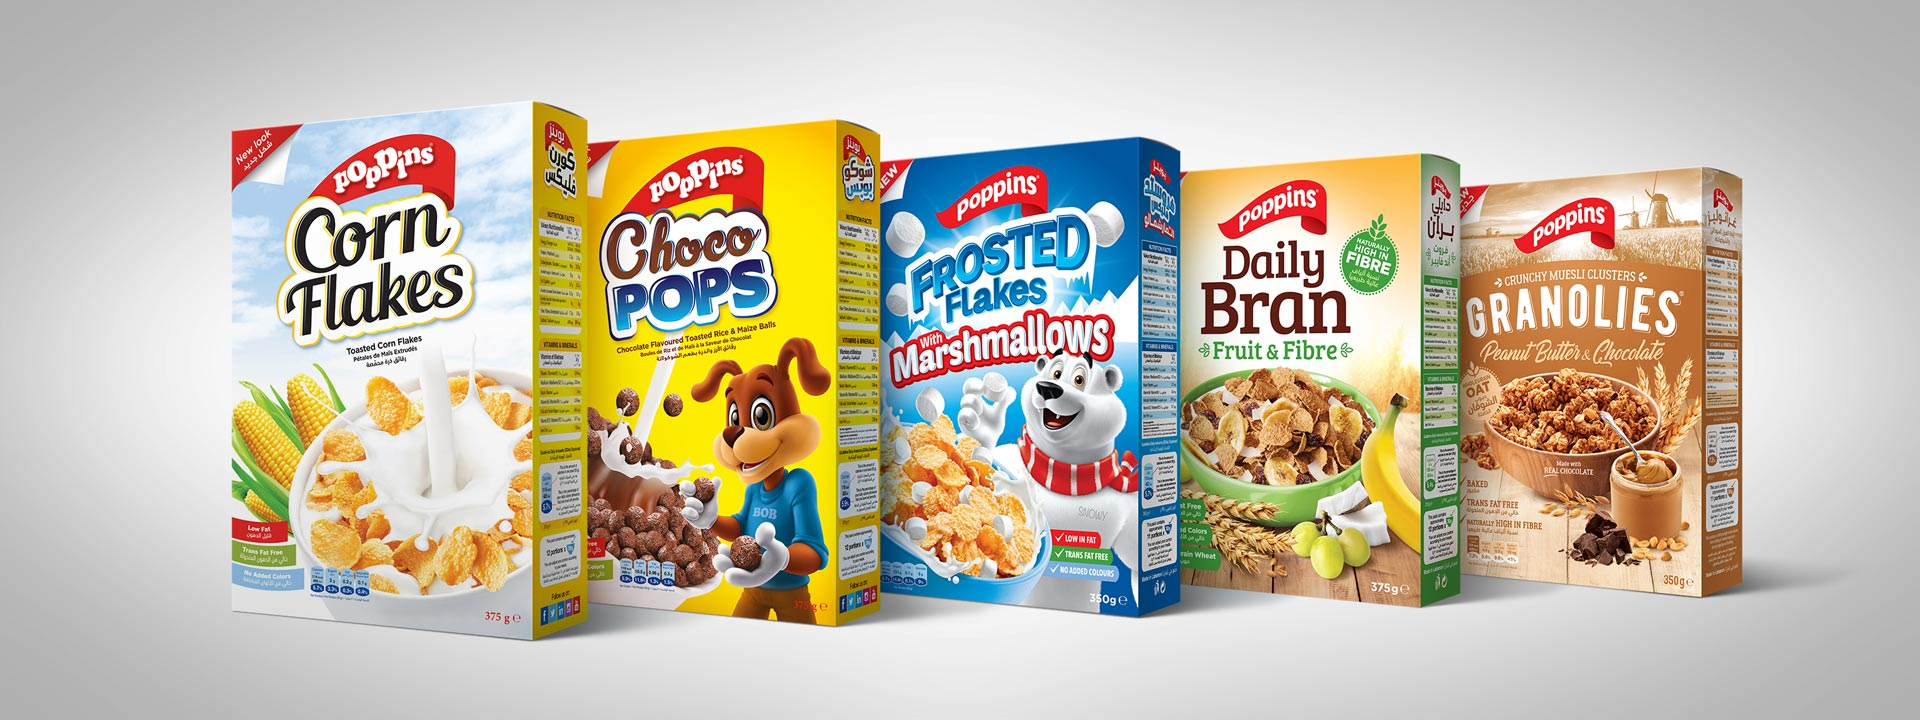 Poppins Product lineup Corn flakes Choco pops Froster Flakes with Marshmallows Granolies Daily Bran